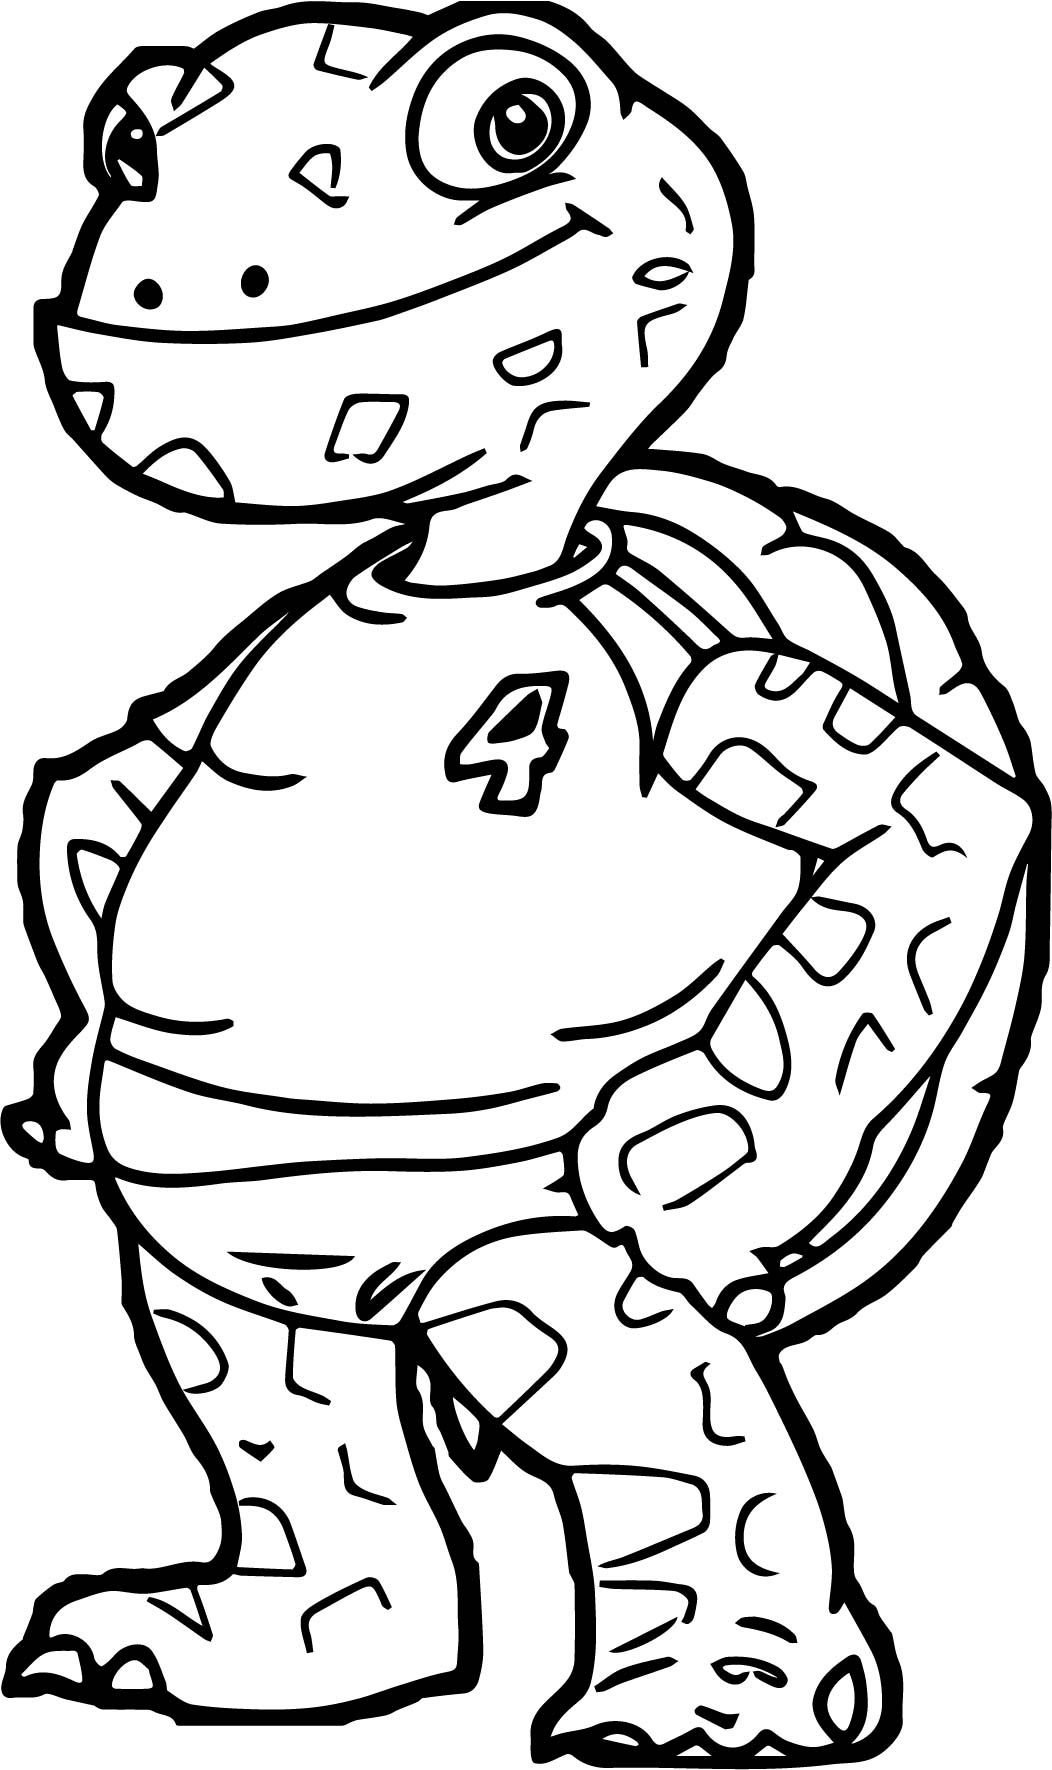 Tortoise Turtle Four Number Coloring Page